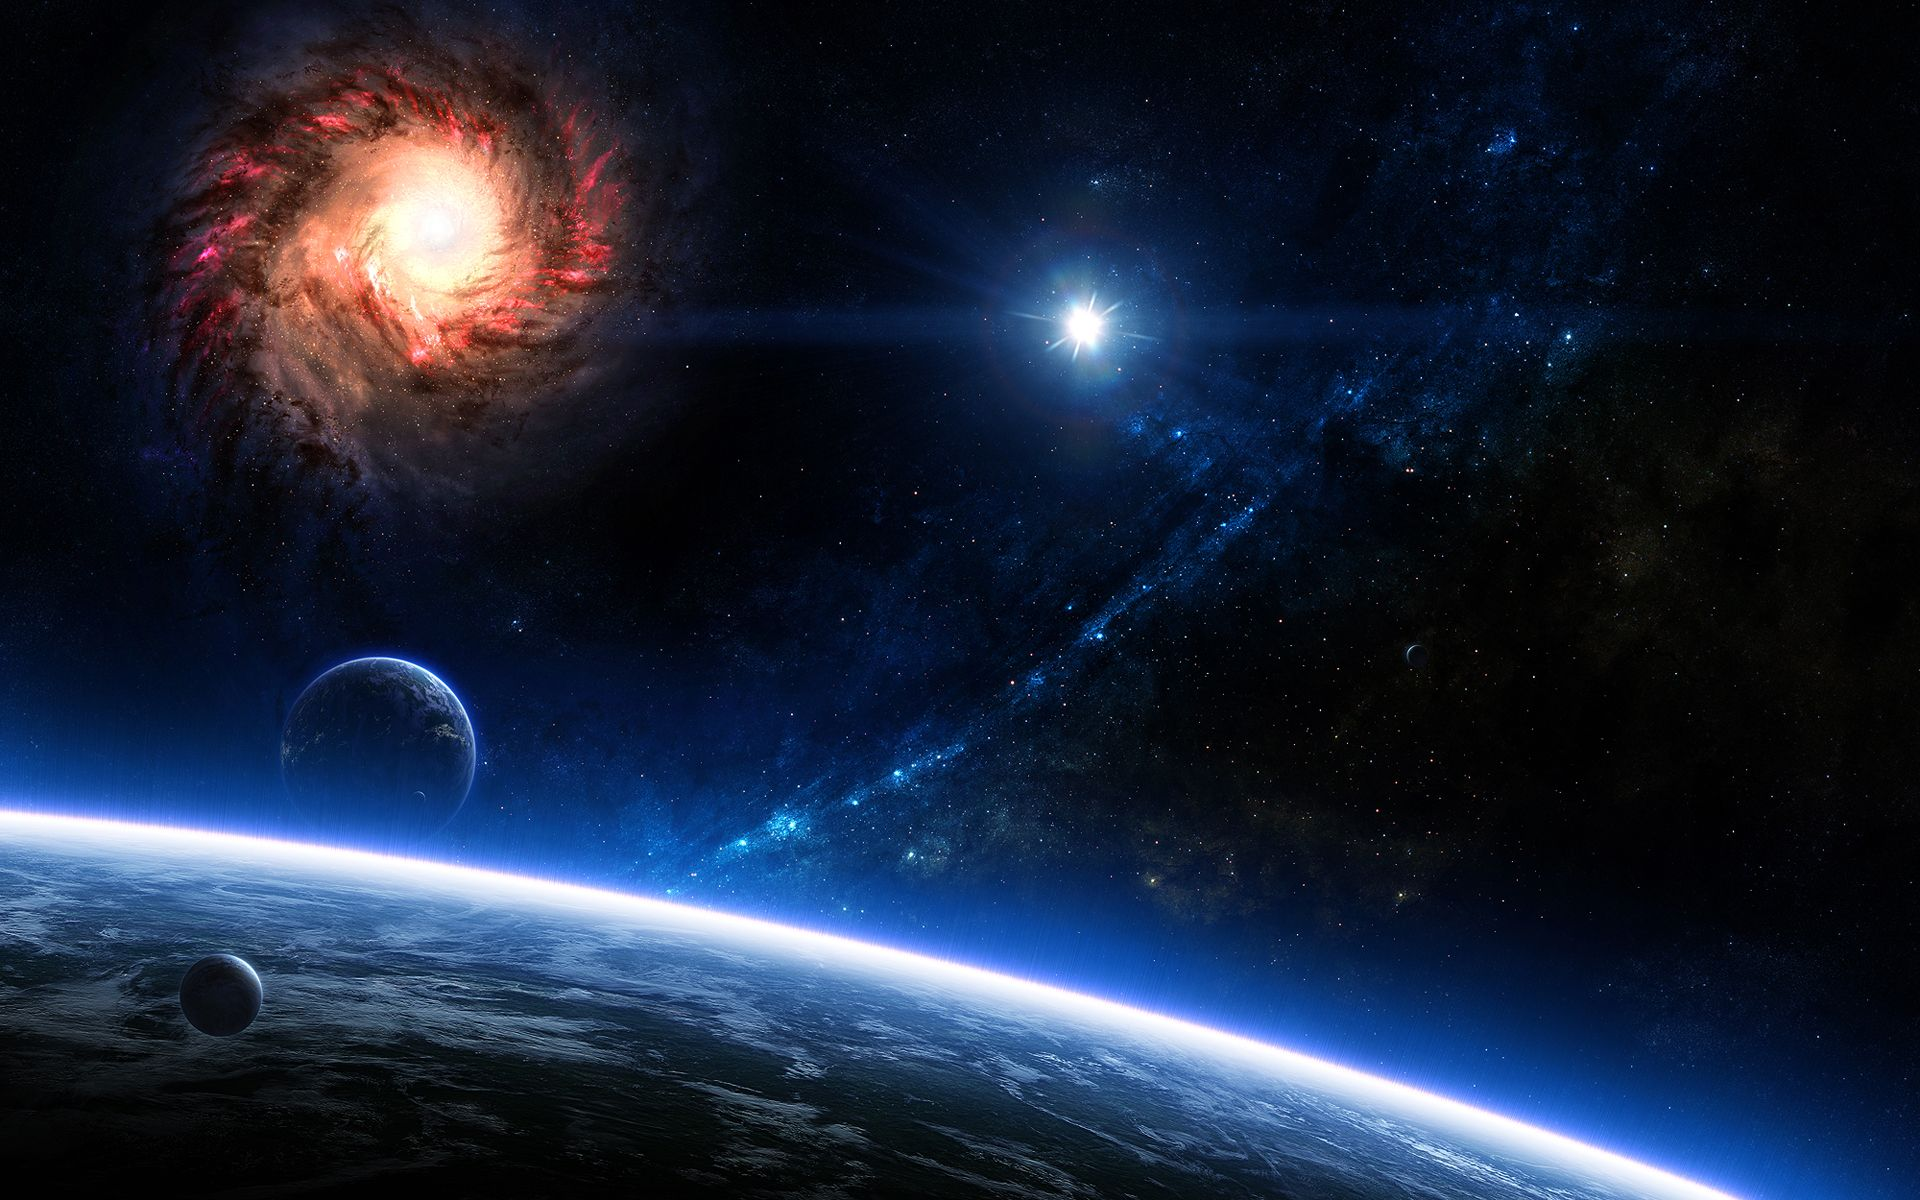 Blue Space Wallpaper 5754 6017 Hd Wallpapers Jpg 1920 1200 Wallpaper Space Space Art Galaxy Wallpaper